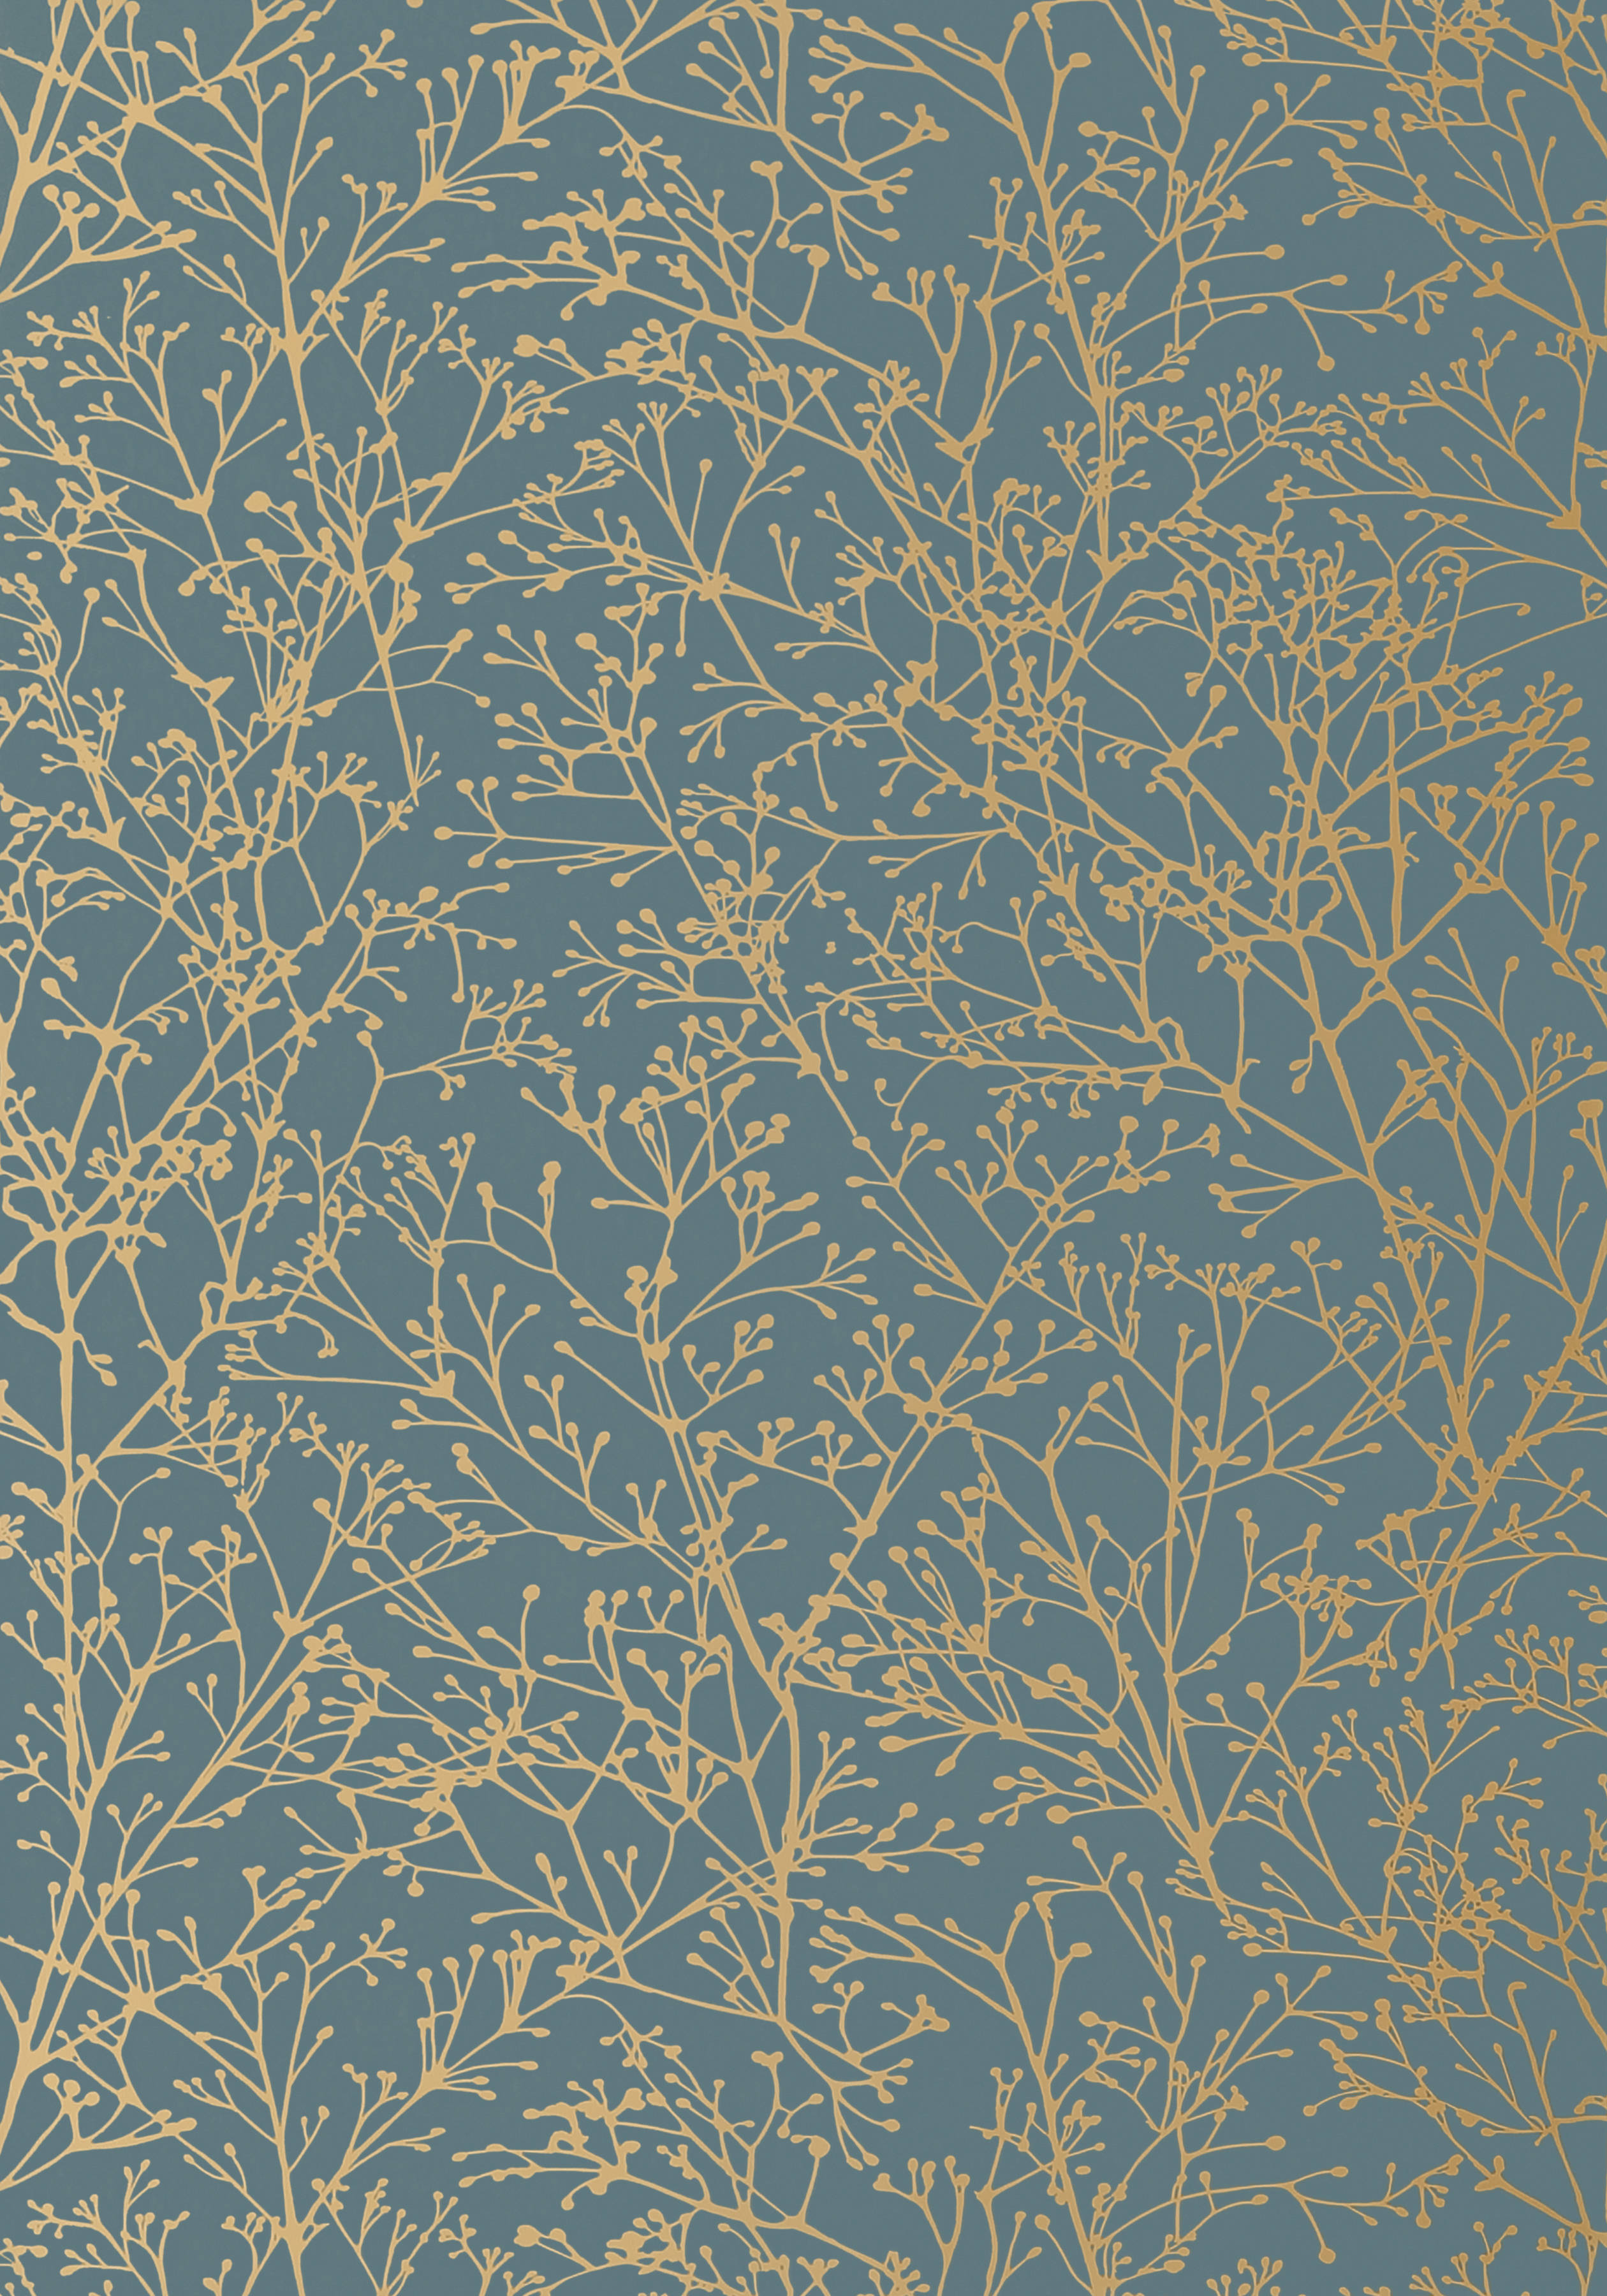 Anna-French-Zola-Zola-Foil-Gold-on-Mineral-Blue-shop-connection-com-wallpaper-wp4404502